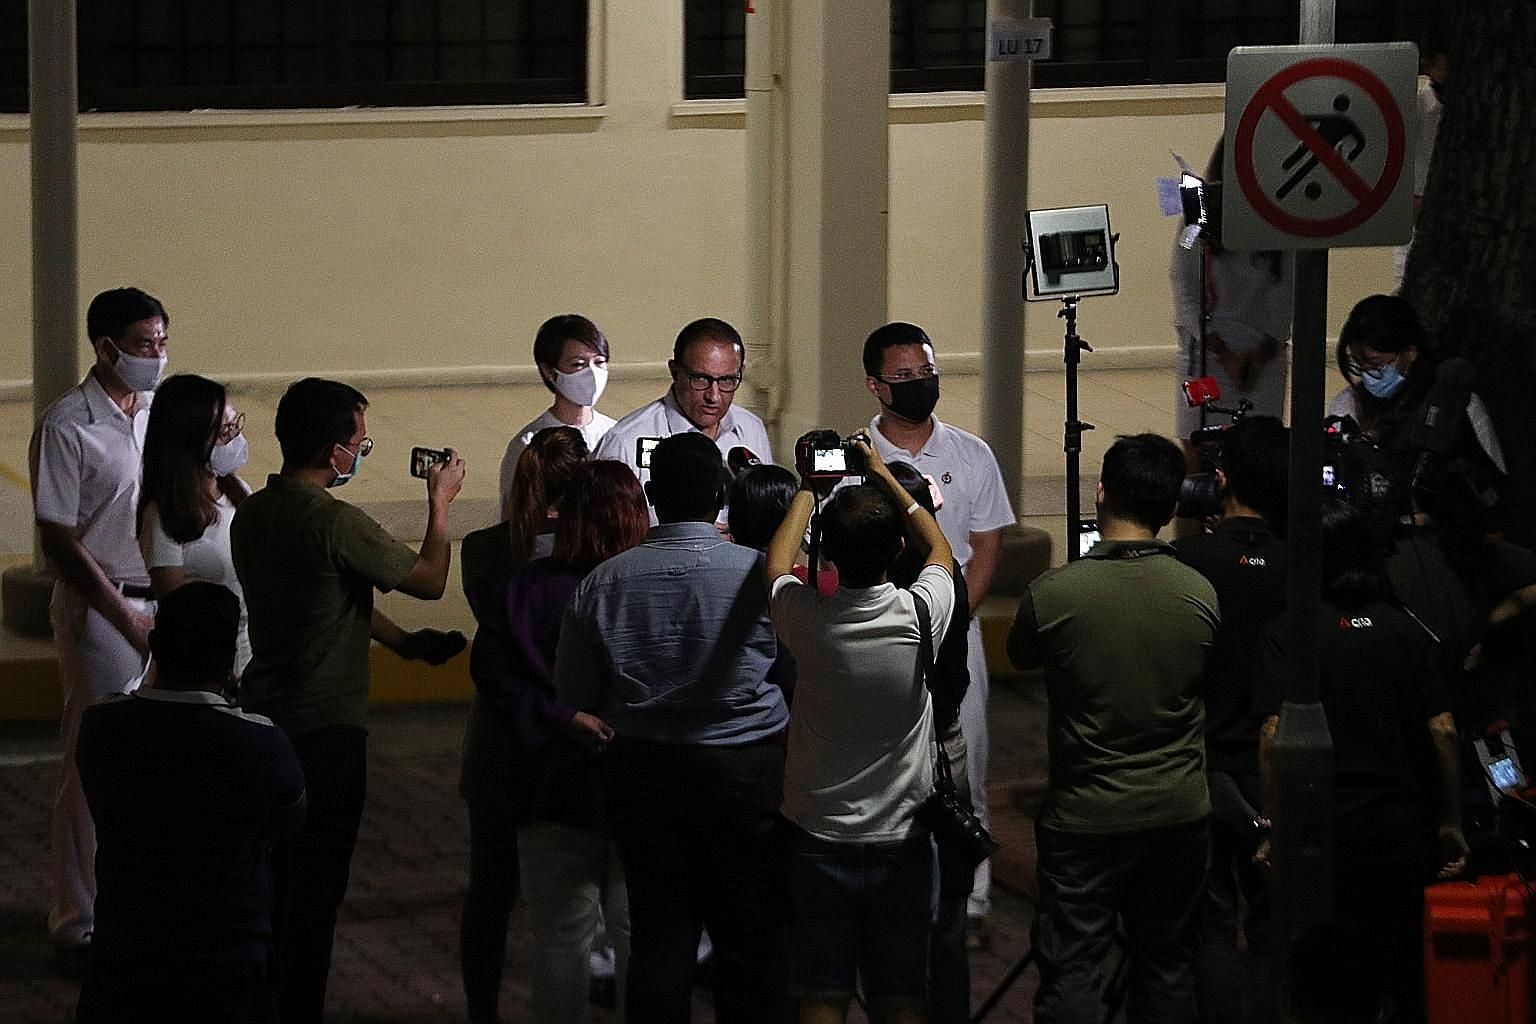 Communications and Information Minister S. Iswaran, surrounded by members of his PAP team for West Coast GRC, speaking to reporters in Clementi early this morning after their win against the Progress Singapore Party.